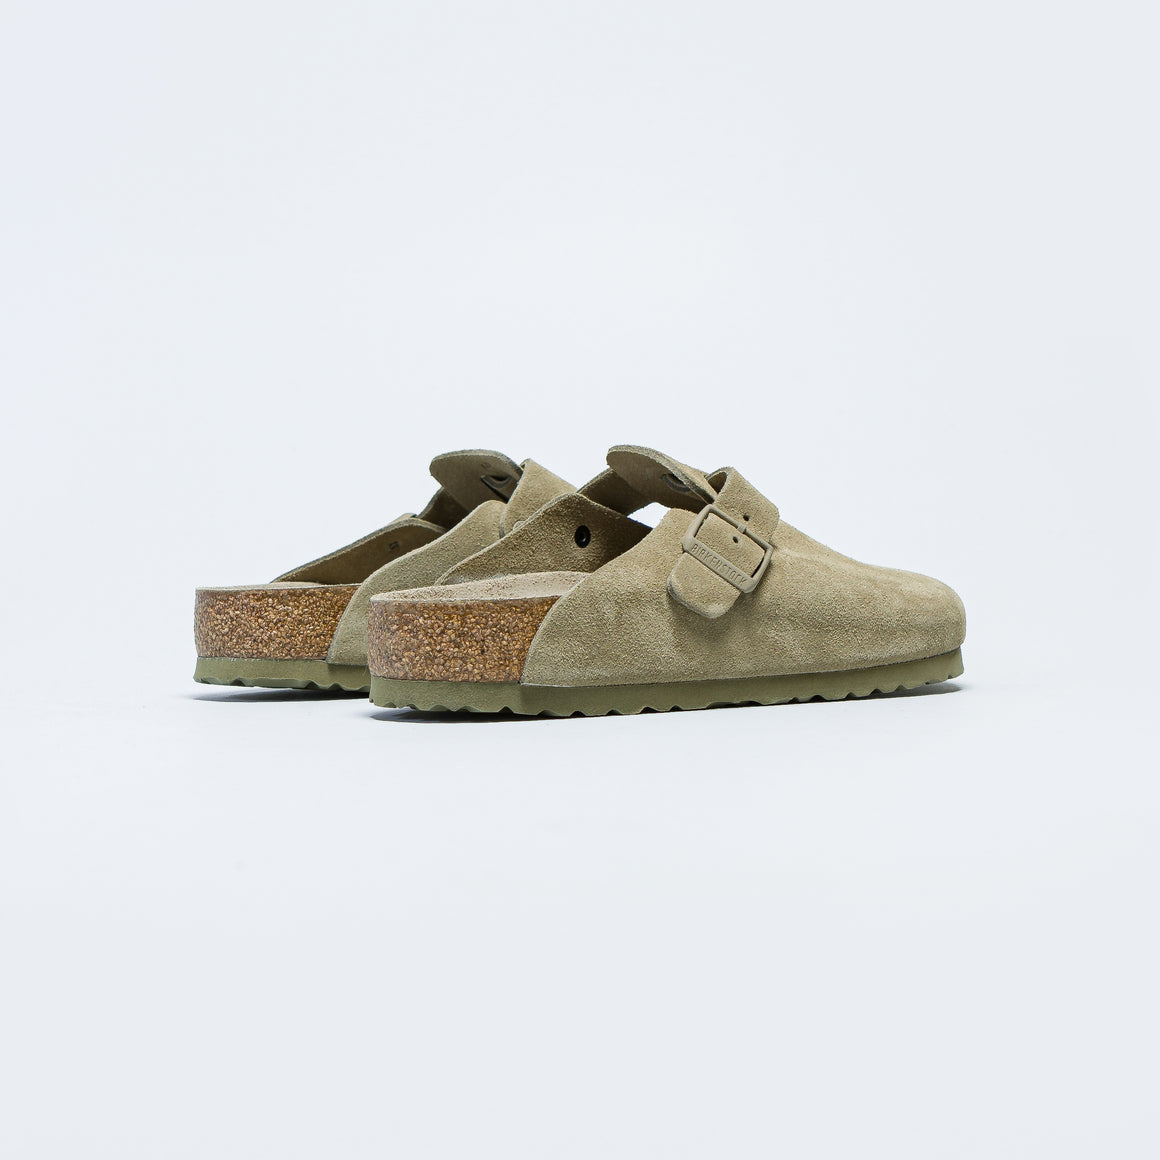 Birkenstock - Boston SFB - Faded Khaki Suede Leather - Up There